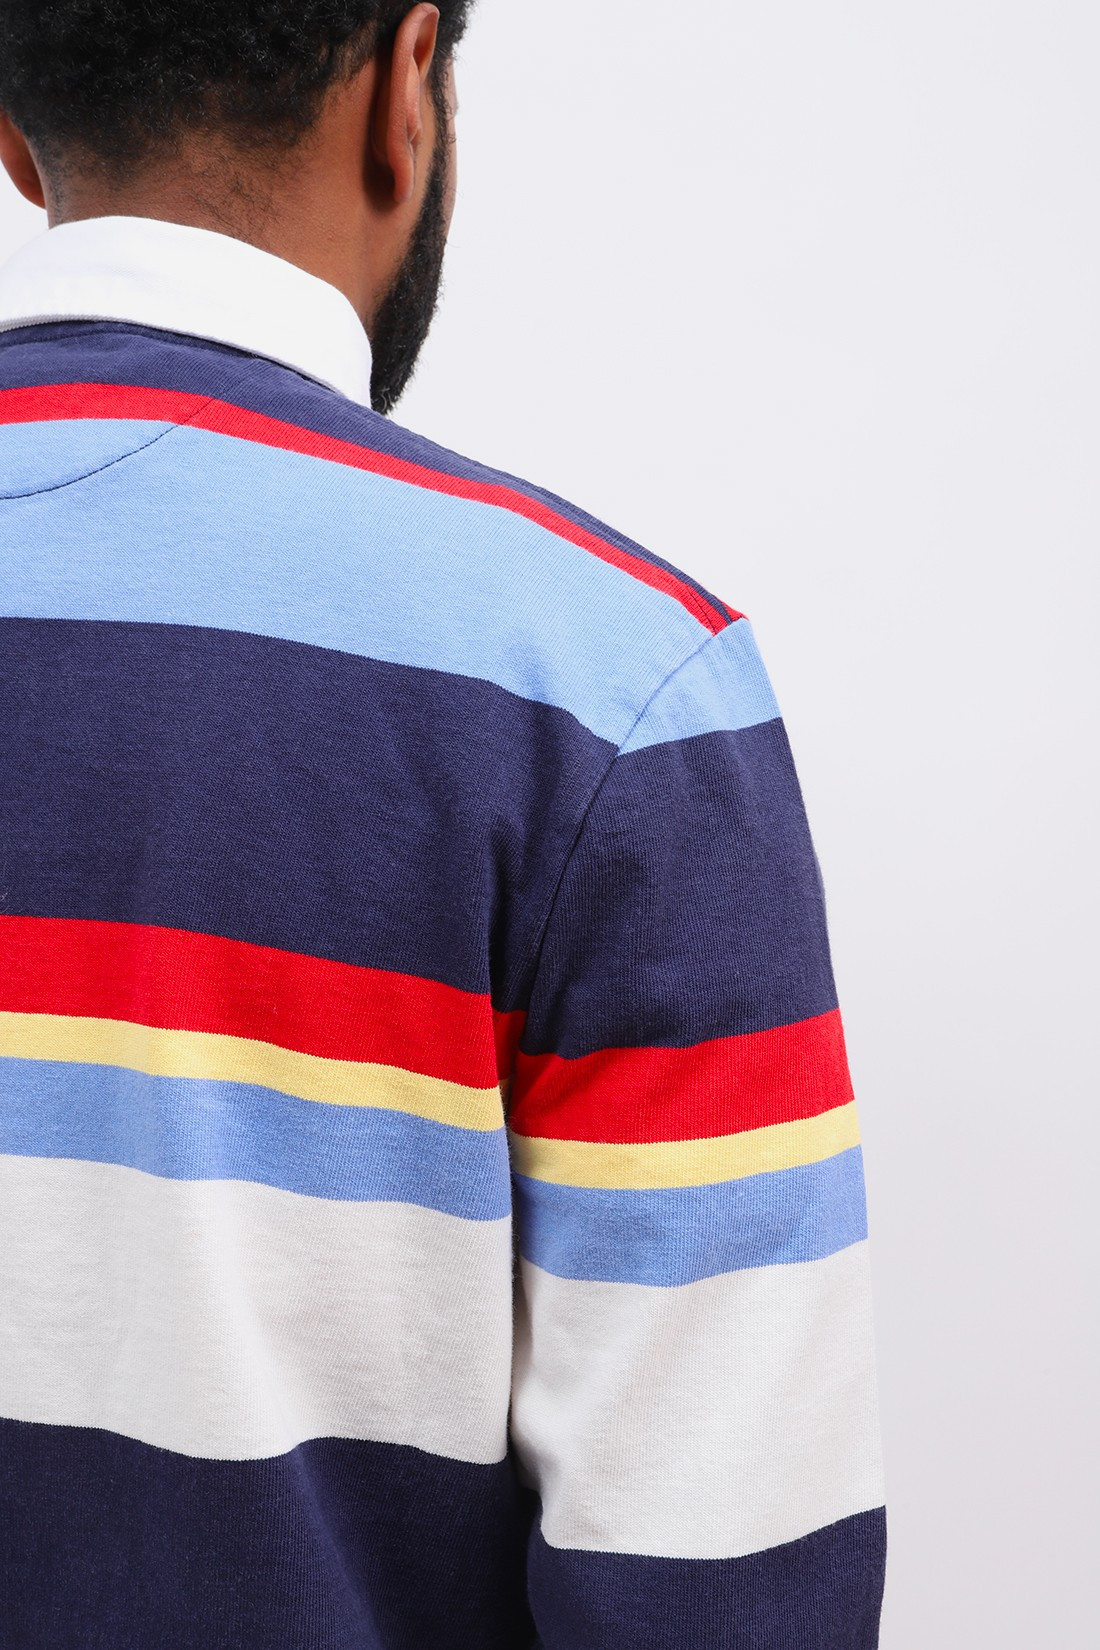 POLO RALPH LAUREN / Classic fit polo rugby l/s Navy newport multi